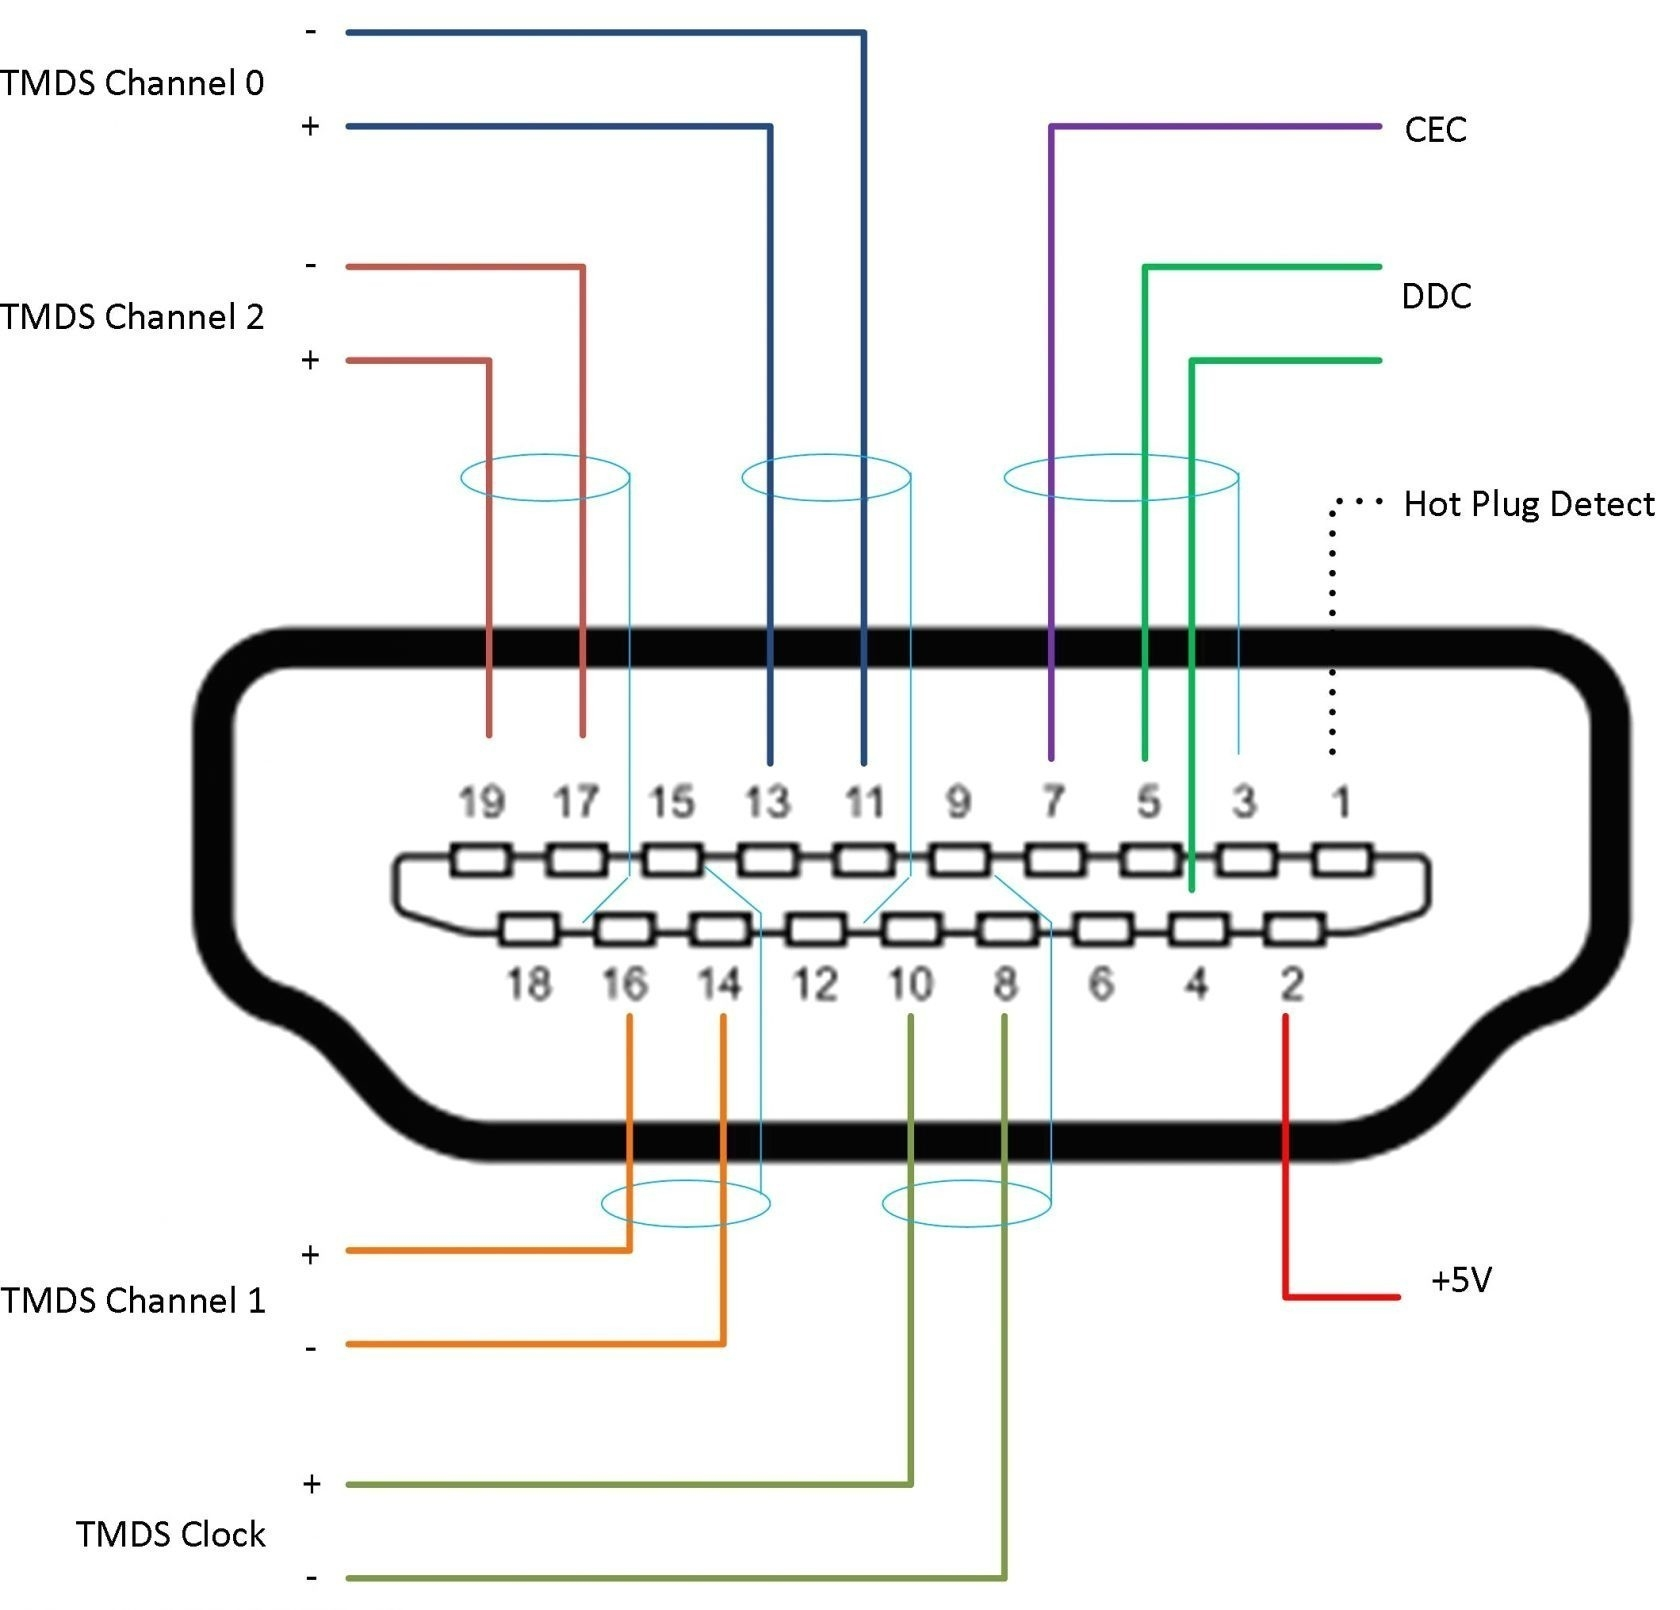 hight resolution of vga to av cable circuit diagram wiring diagram